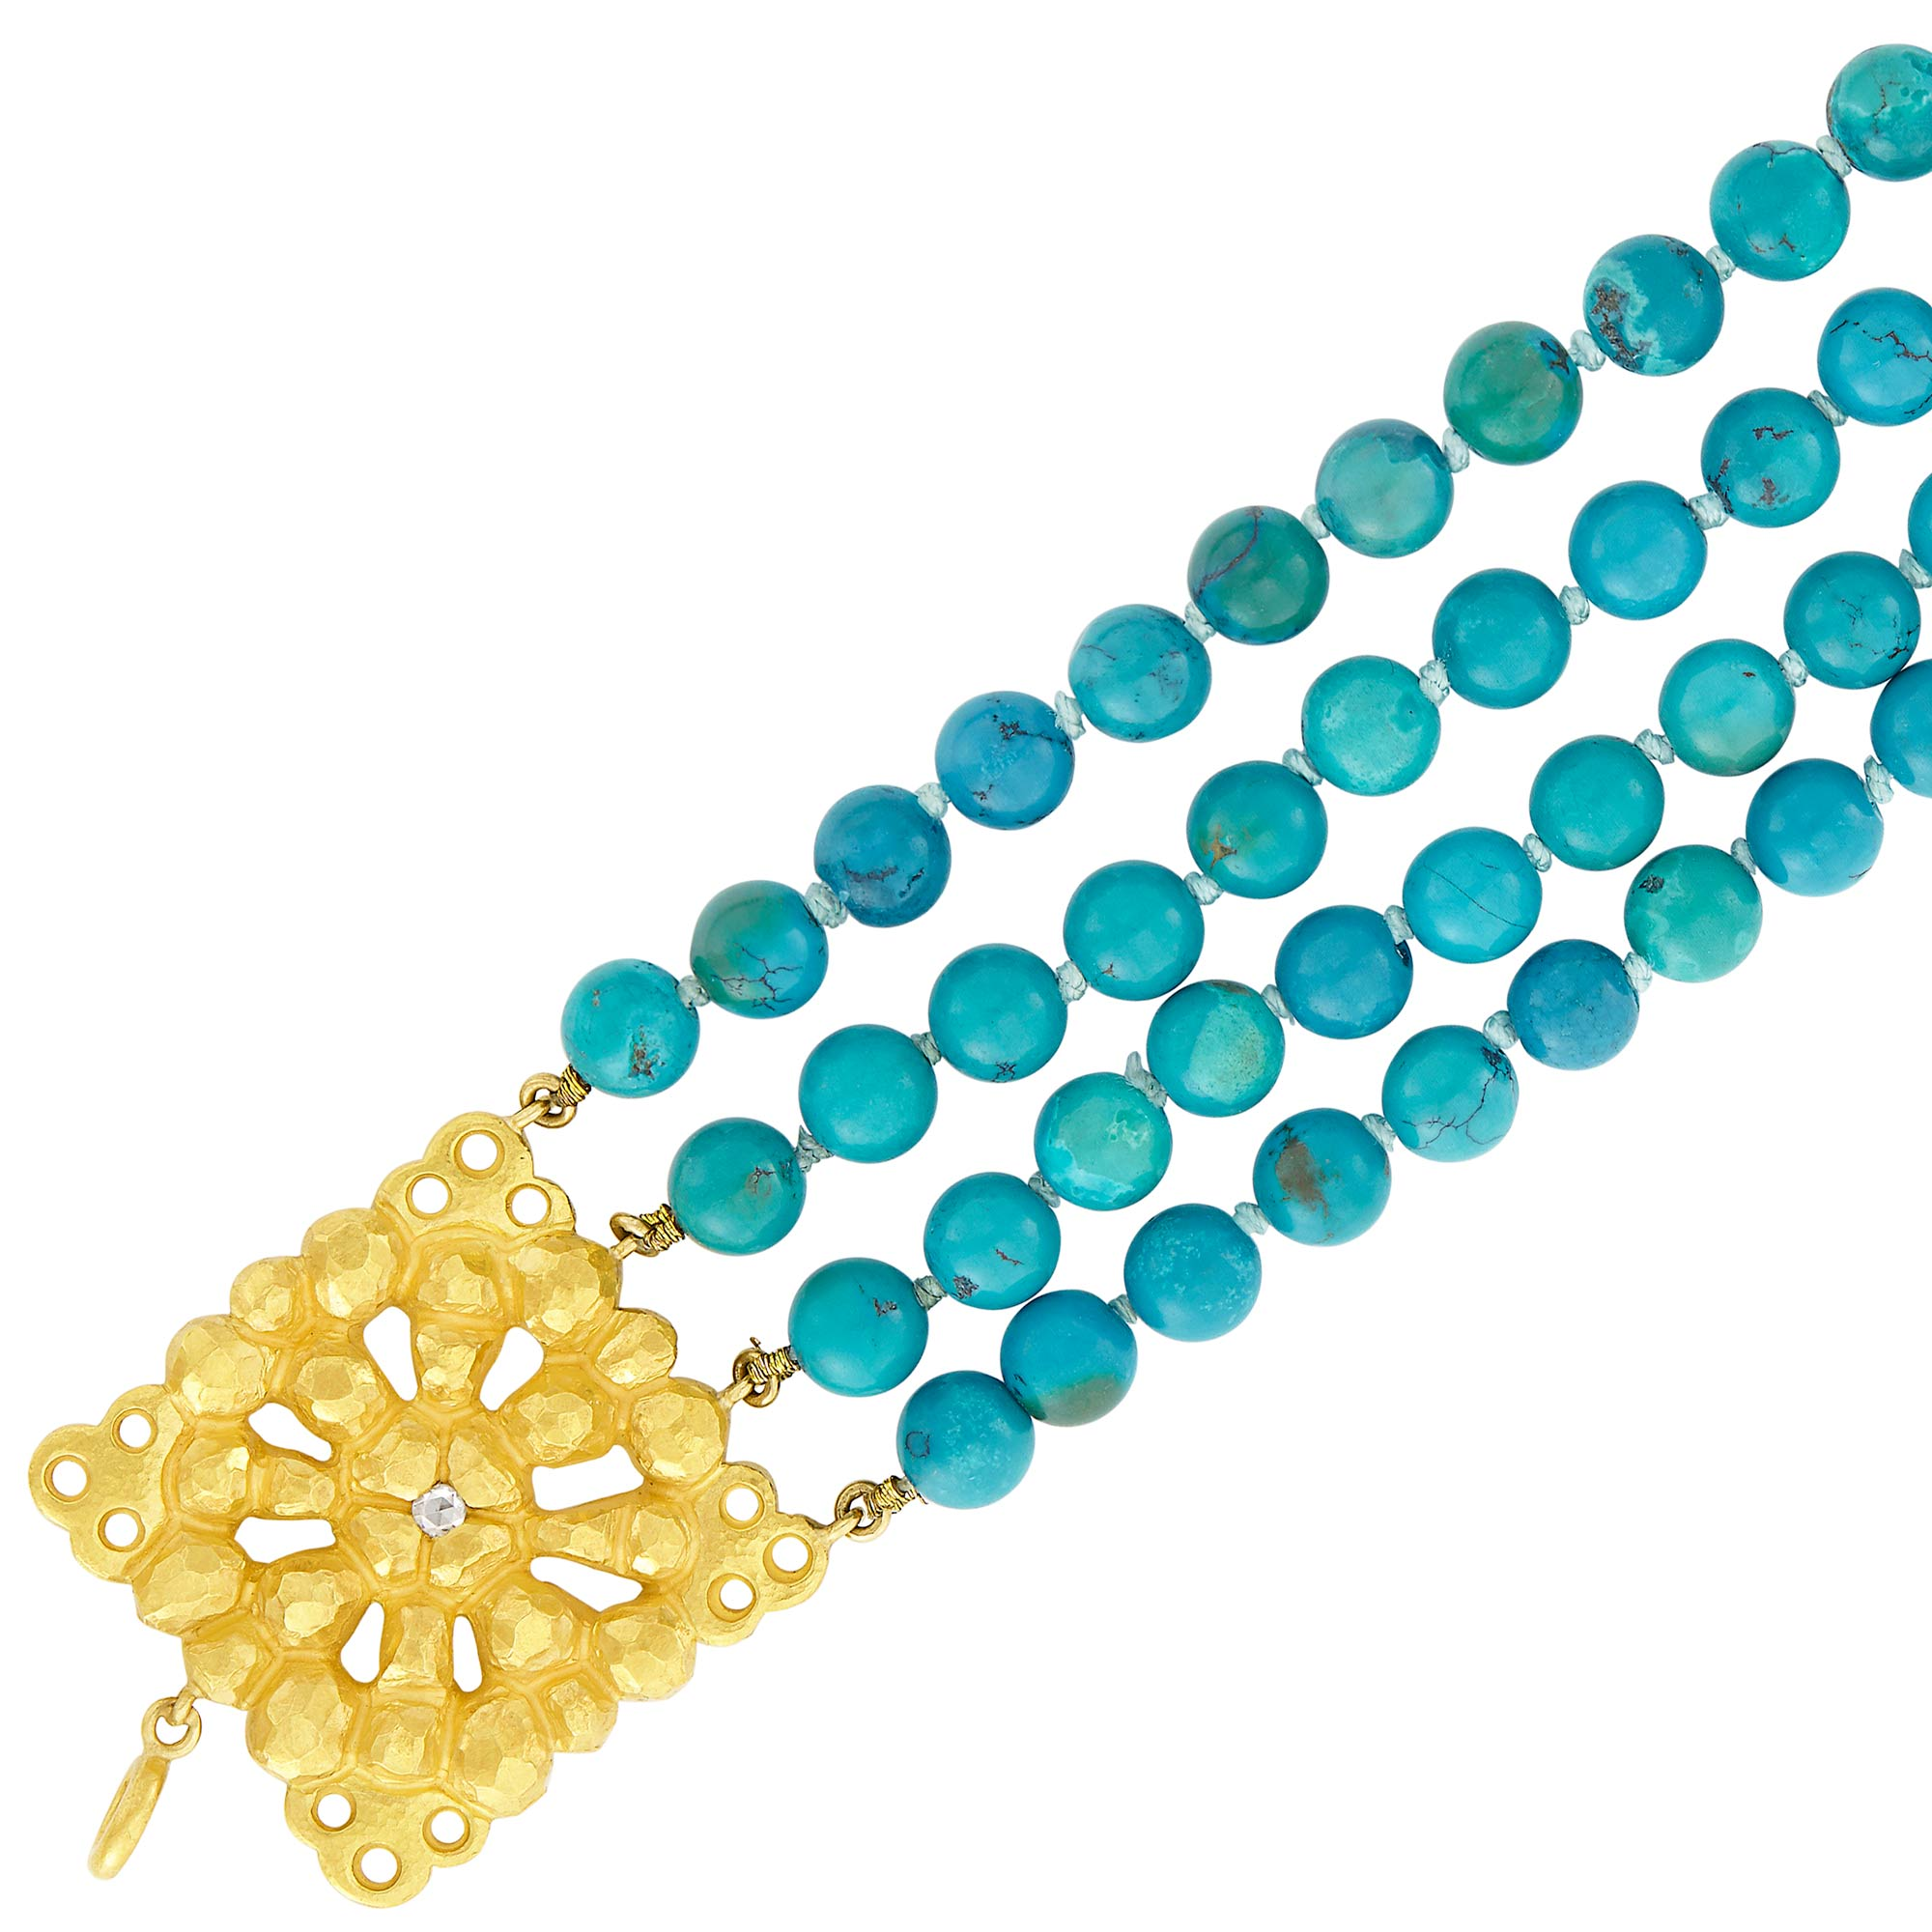 Lot image - Four Strand Turquoise Bead Bracelet with High Karat Gold and Diamond Clasp, Linda Lee Johnson